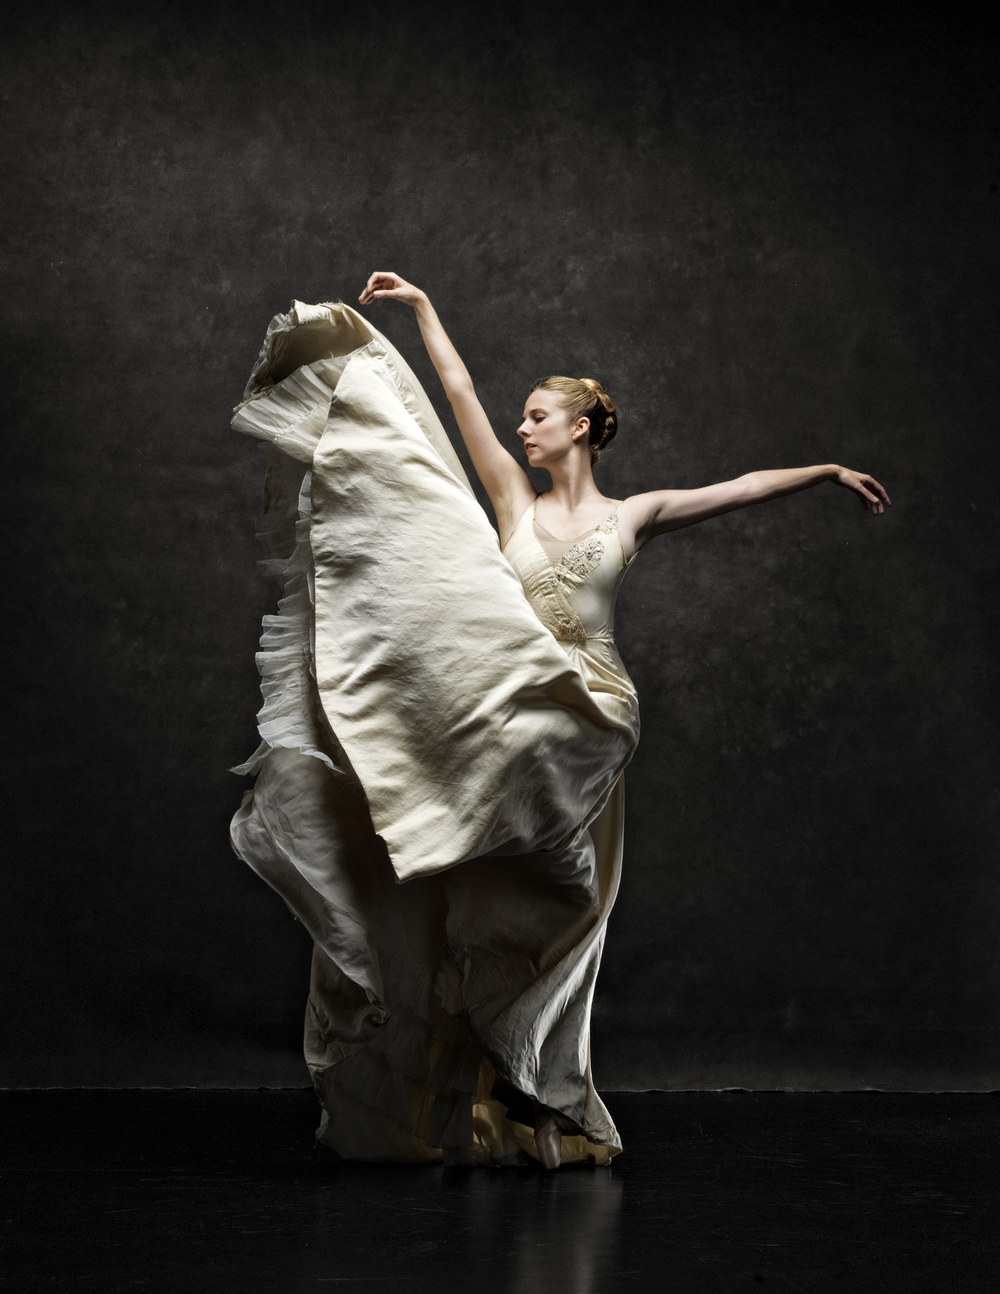 Photo: Ken Browar & Deborah Ory